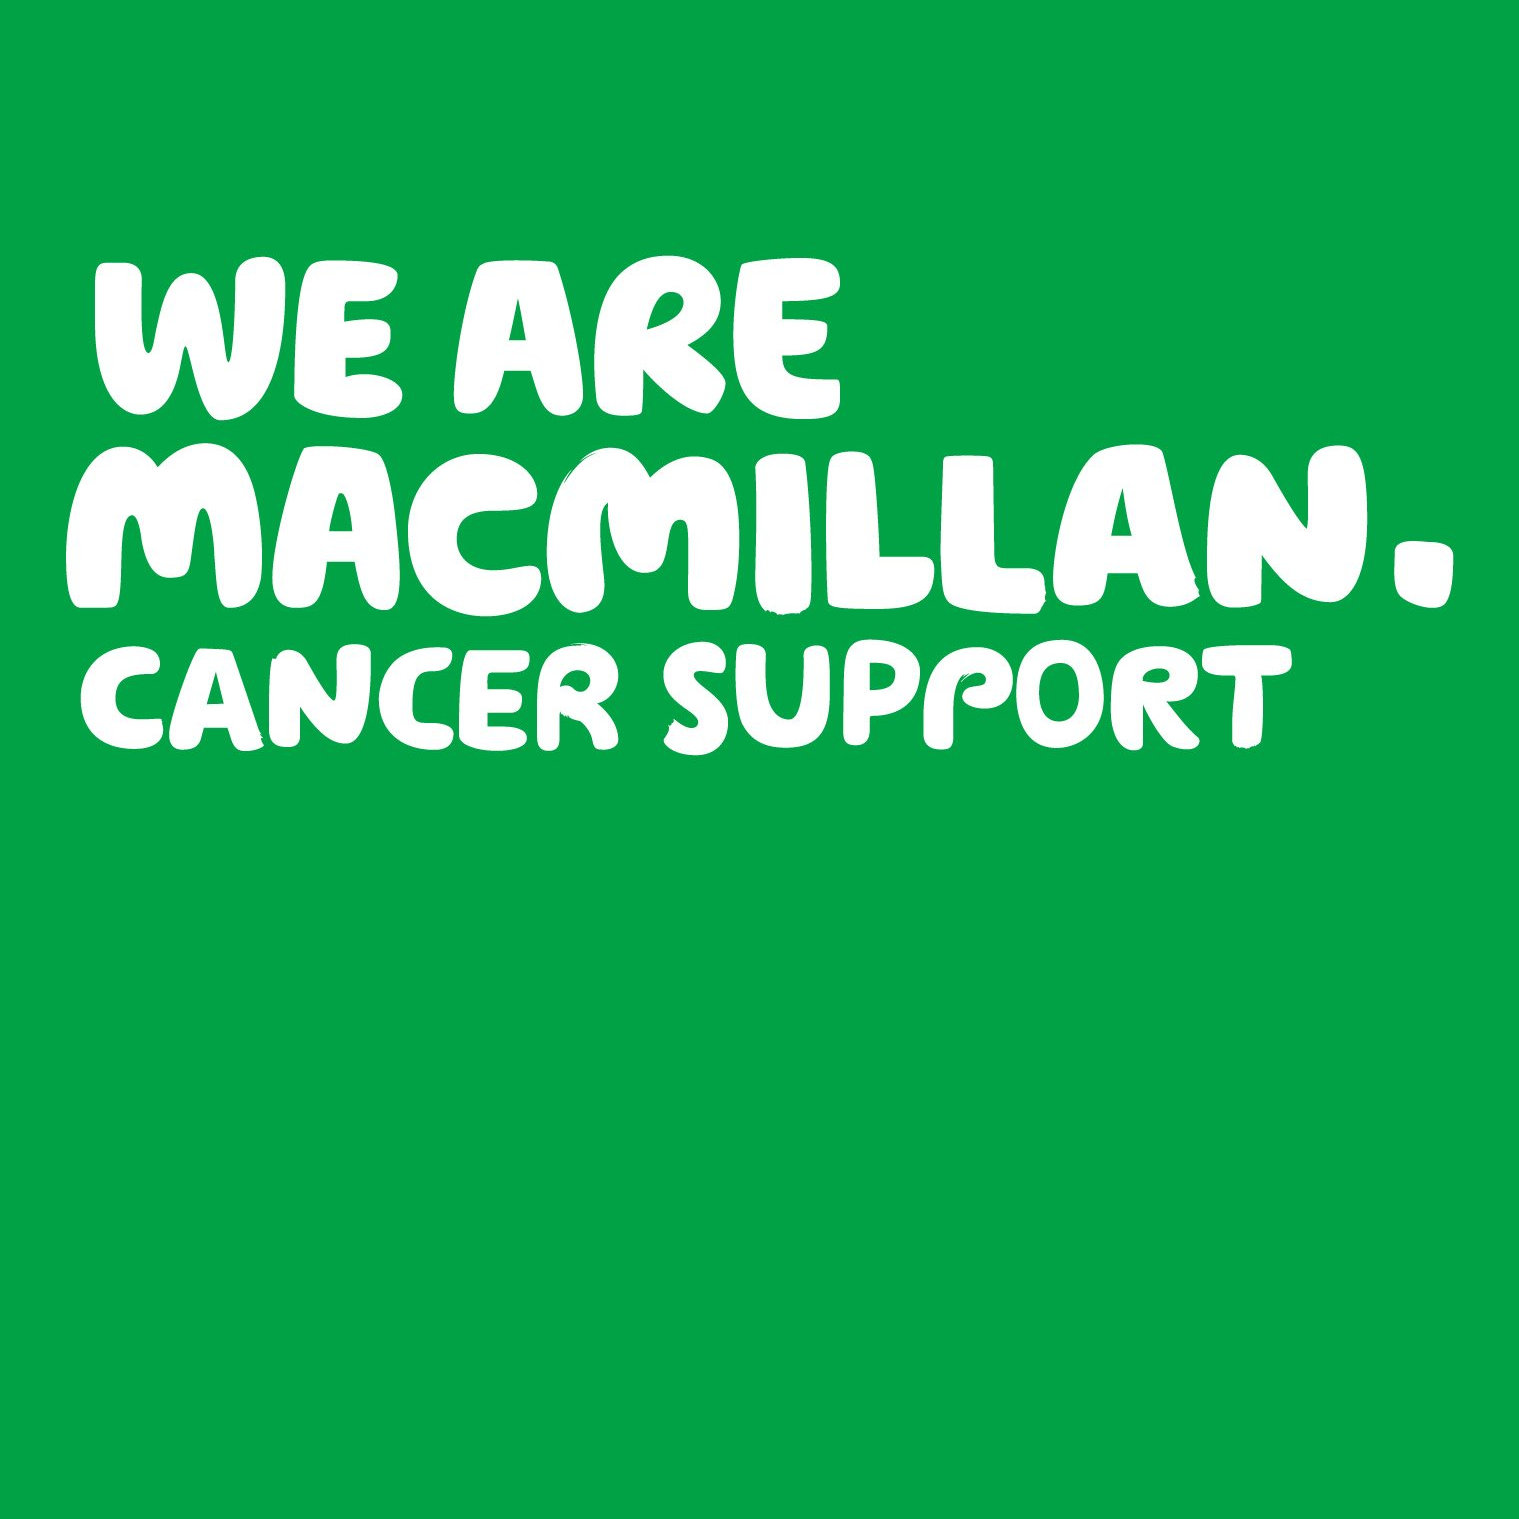 Donate to MacMillan Cancer Support